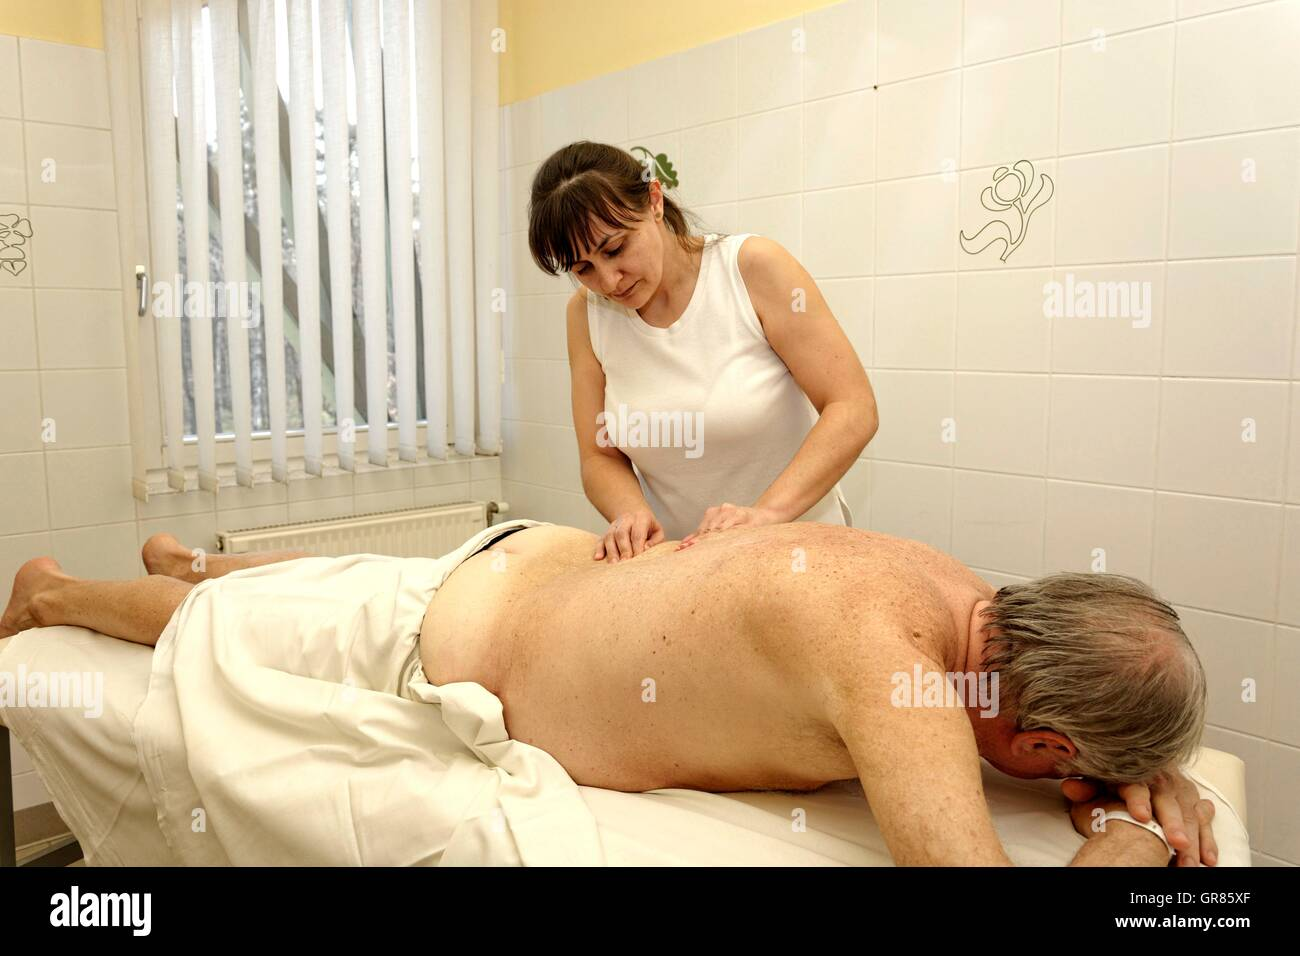 Vibration, Muscle Tremors Is From Therapist To Seniors Back Generated At The Spa Cegled - Stock Image